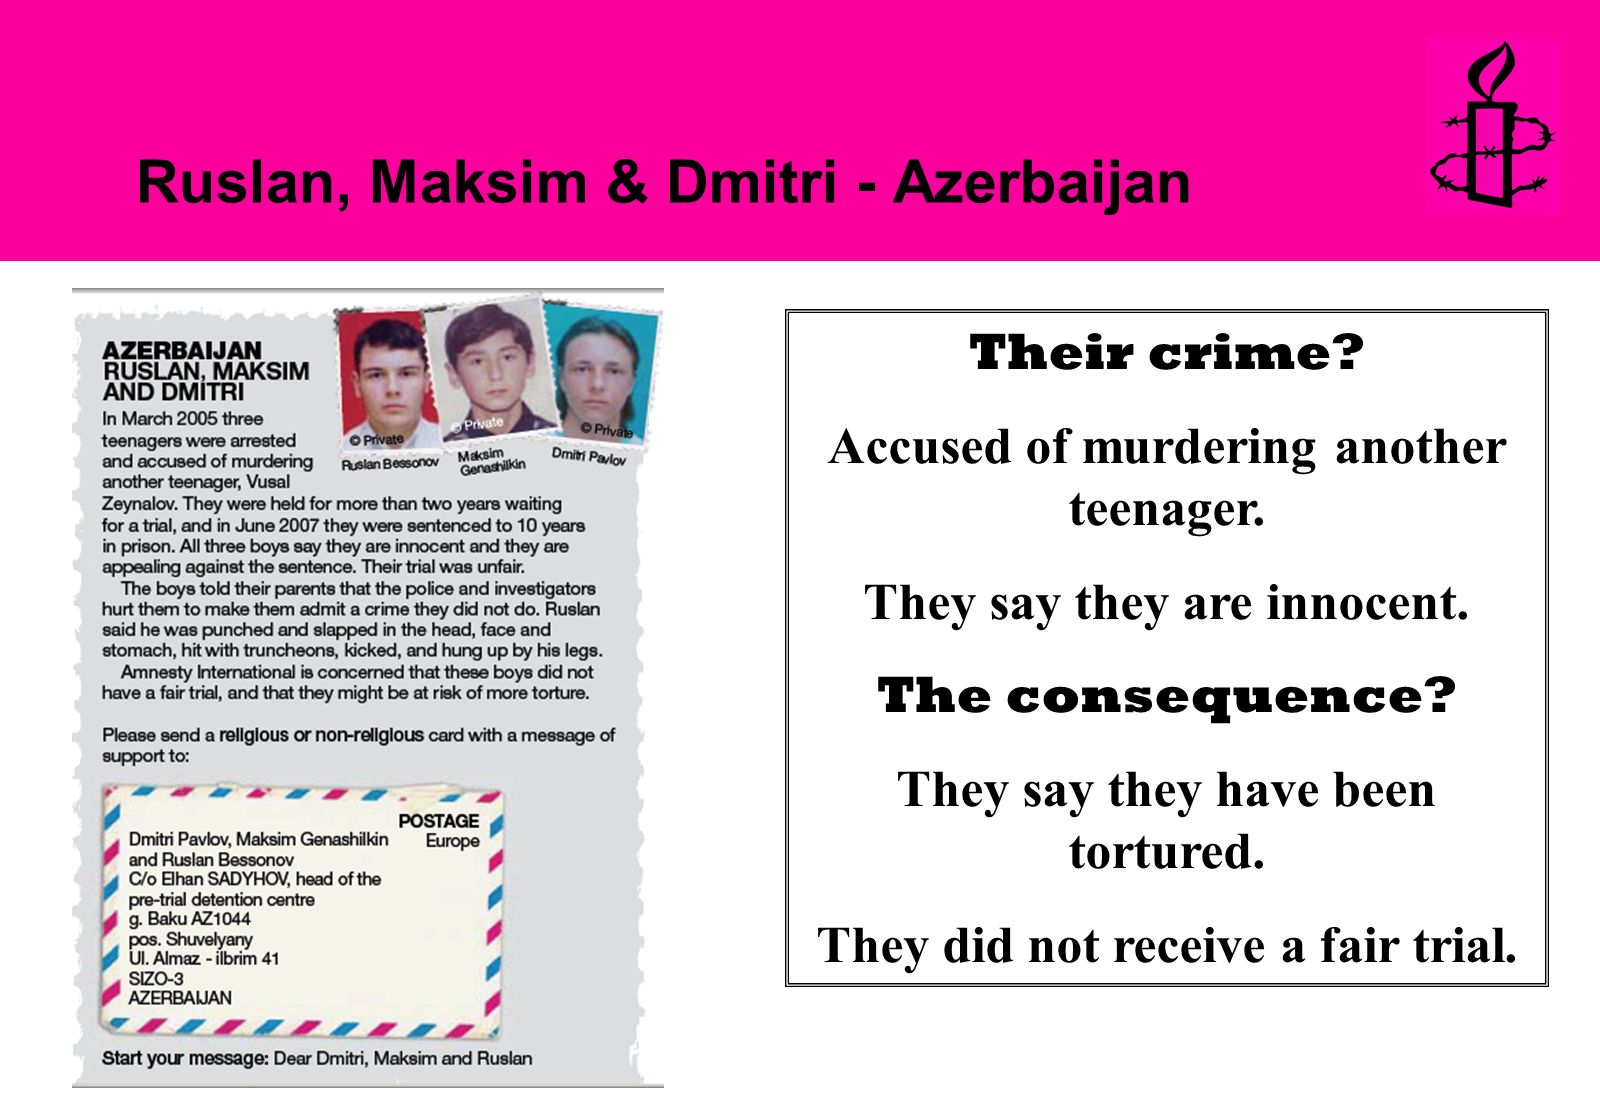 Ruslan, Maksim & Dmitri - Azerbaijan Their crime? Accused of murdering another teenager. They say they are innocent. The consequence? They say they ha